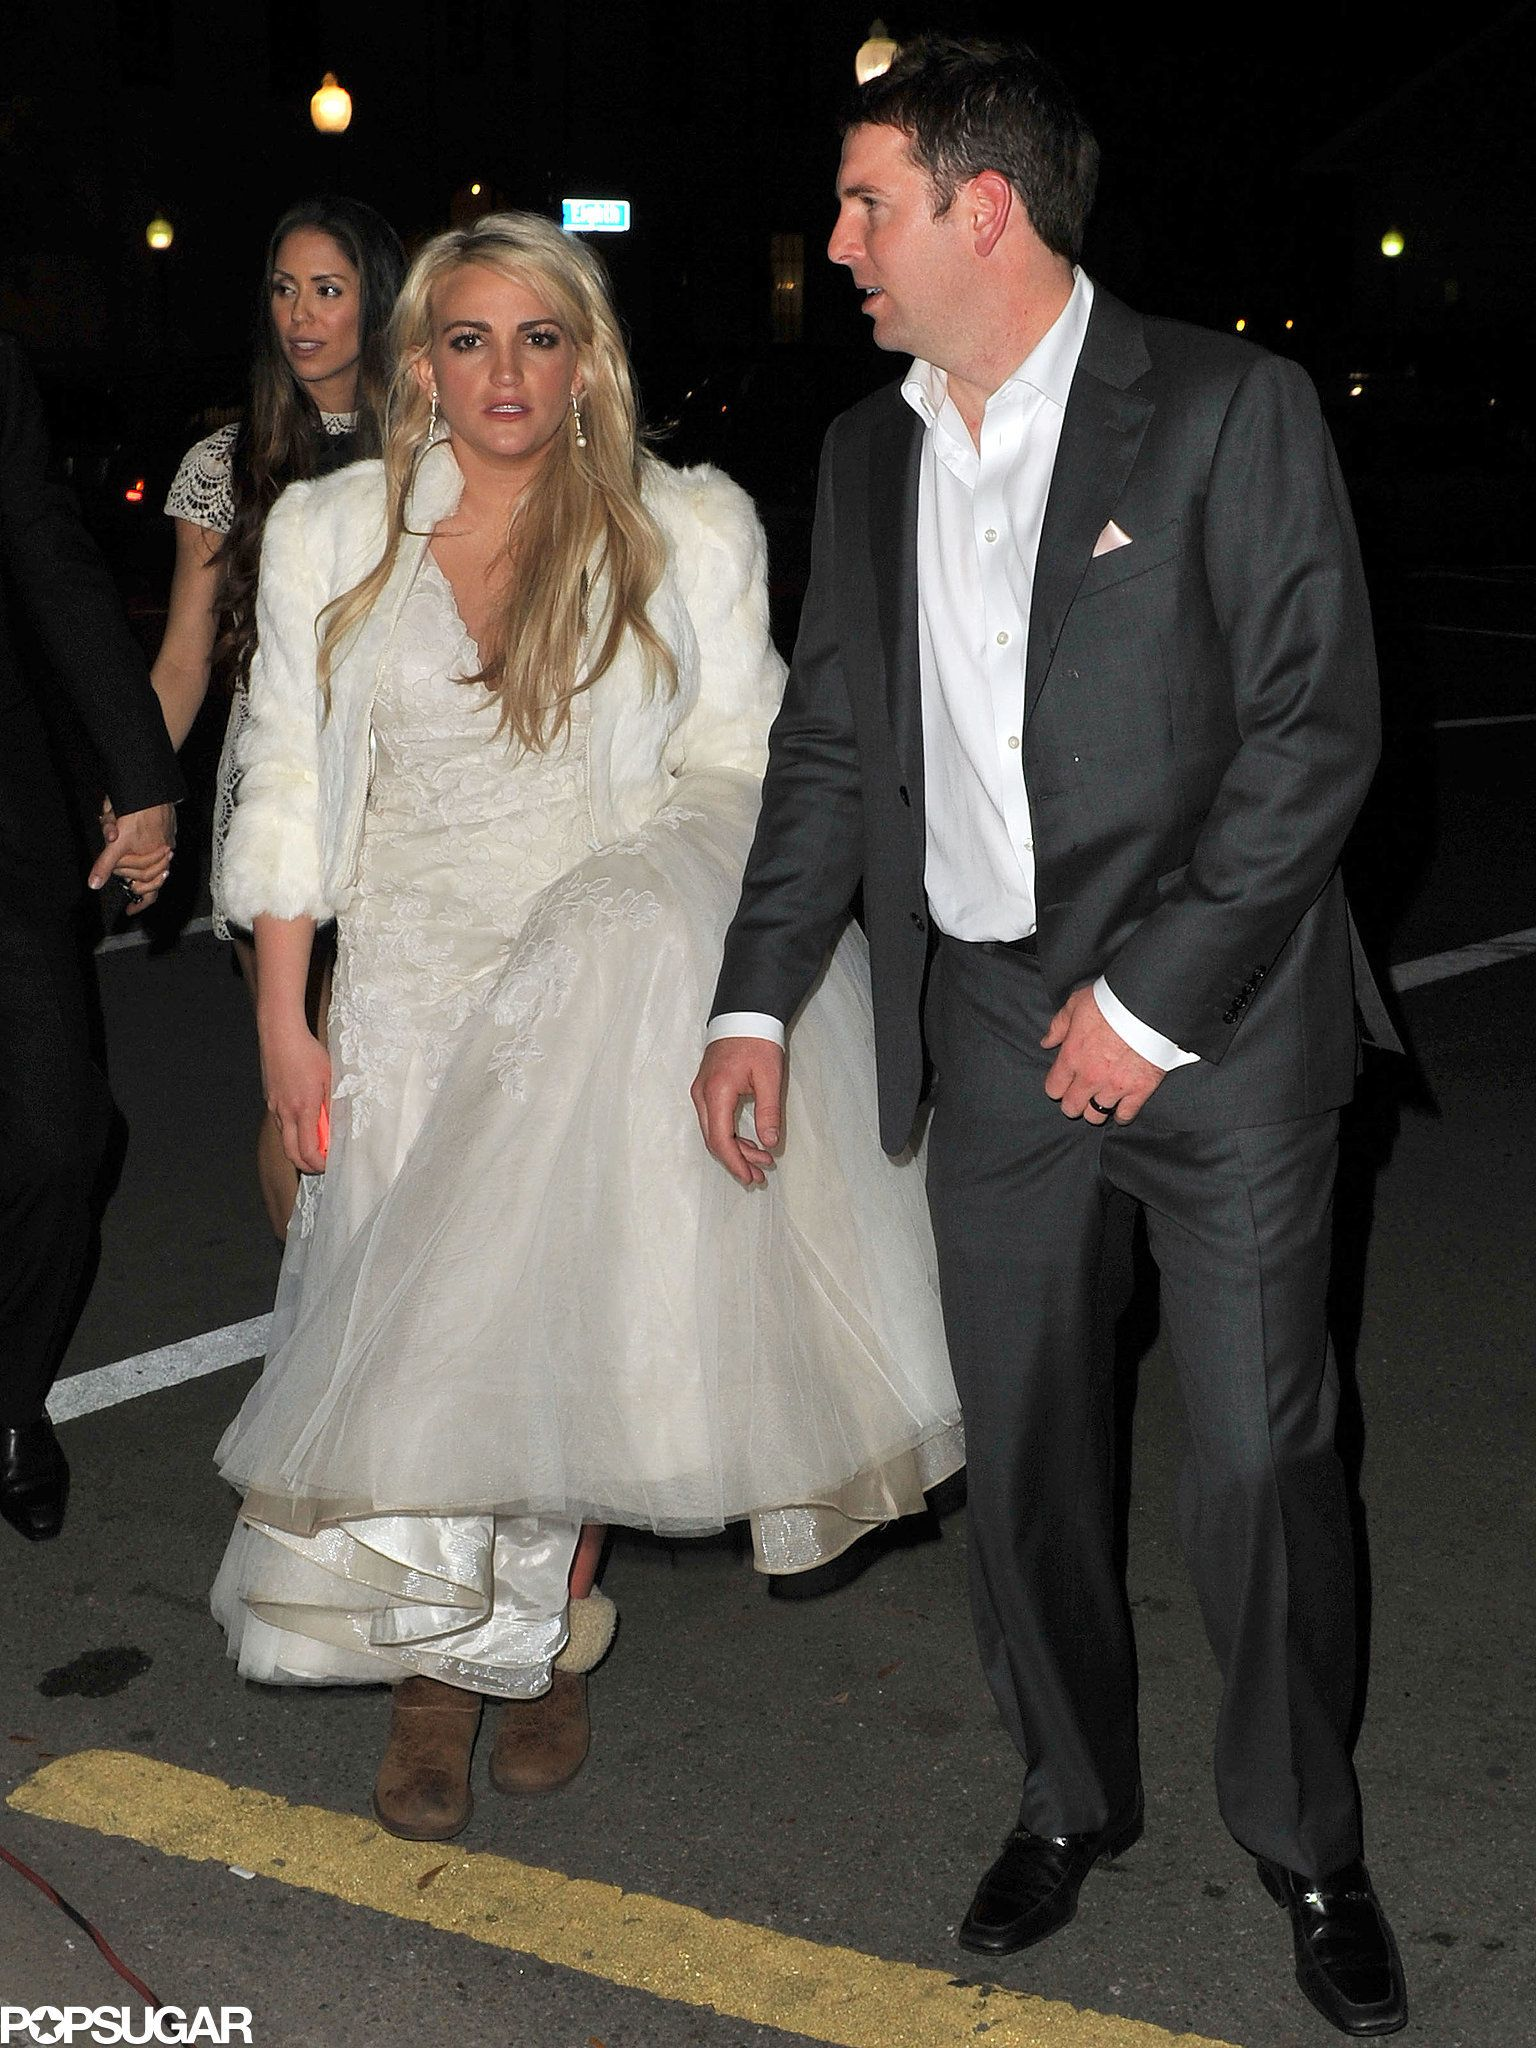 Celebrity Entertainment Like A True Spears Girl Jamie Lynn Pairs Her Wedding Dress With Uggs Womens Wedding Dresses Jamie Lynn Spears Wedding Dresses